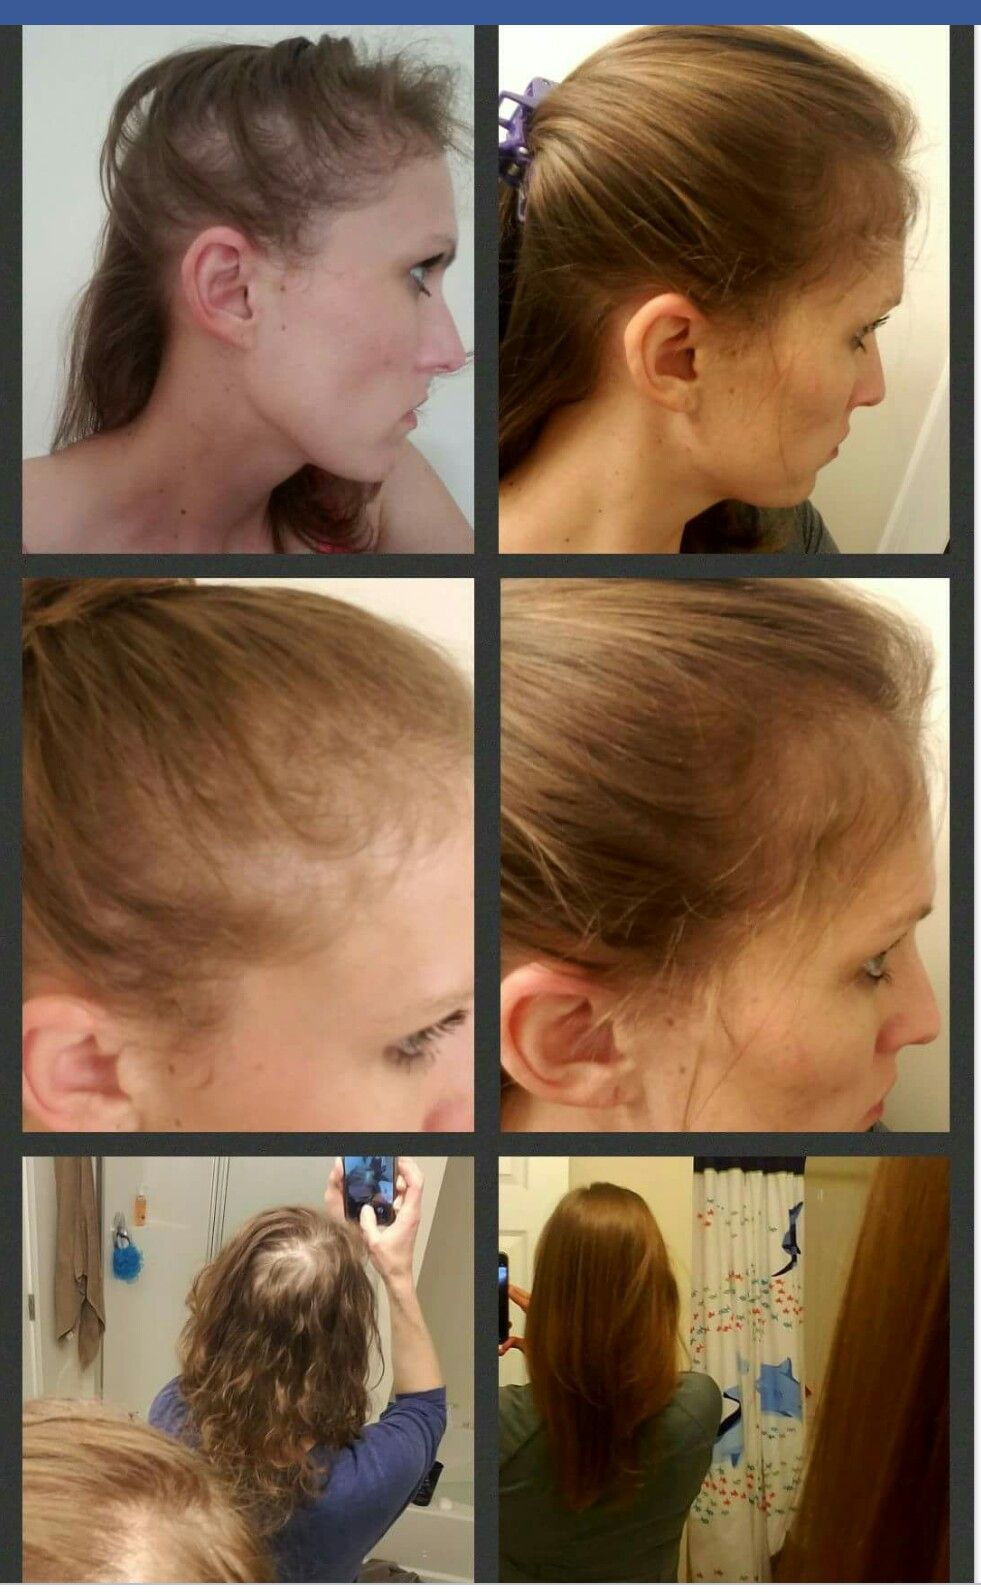 Pin by Shawnda Johnson on Monat's before and after Hair